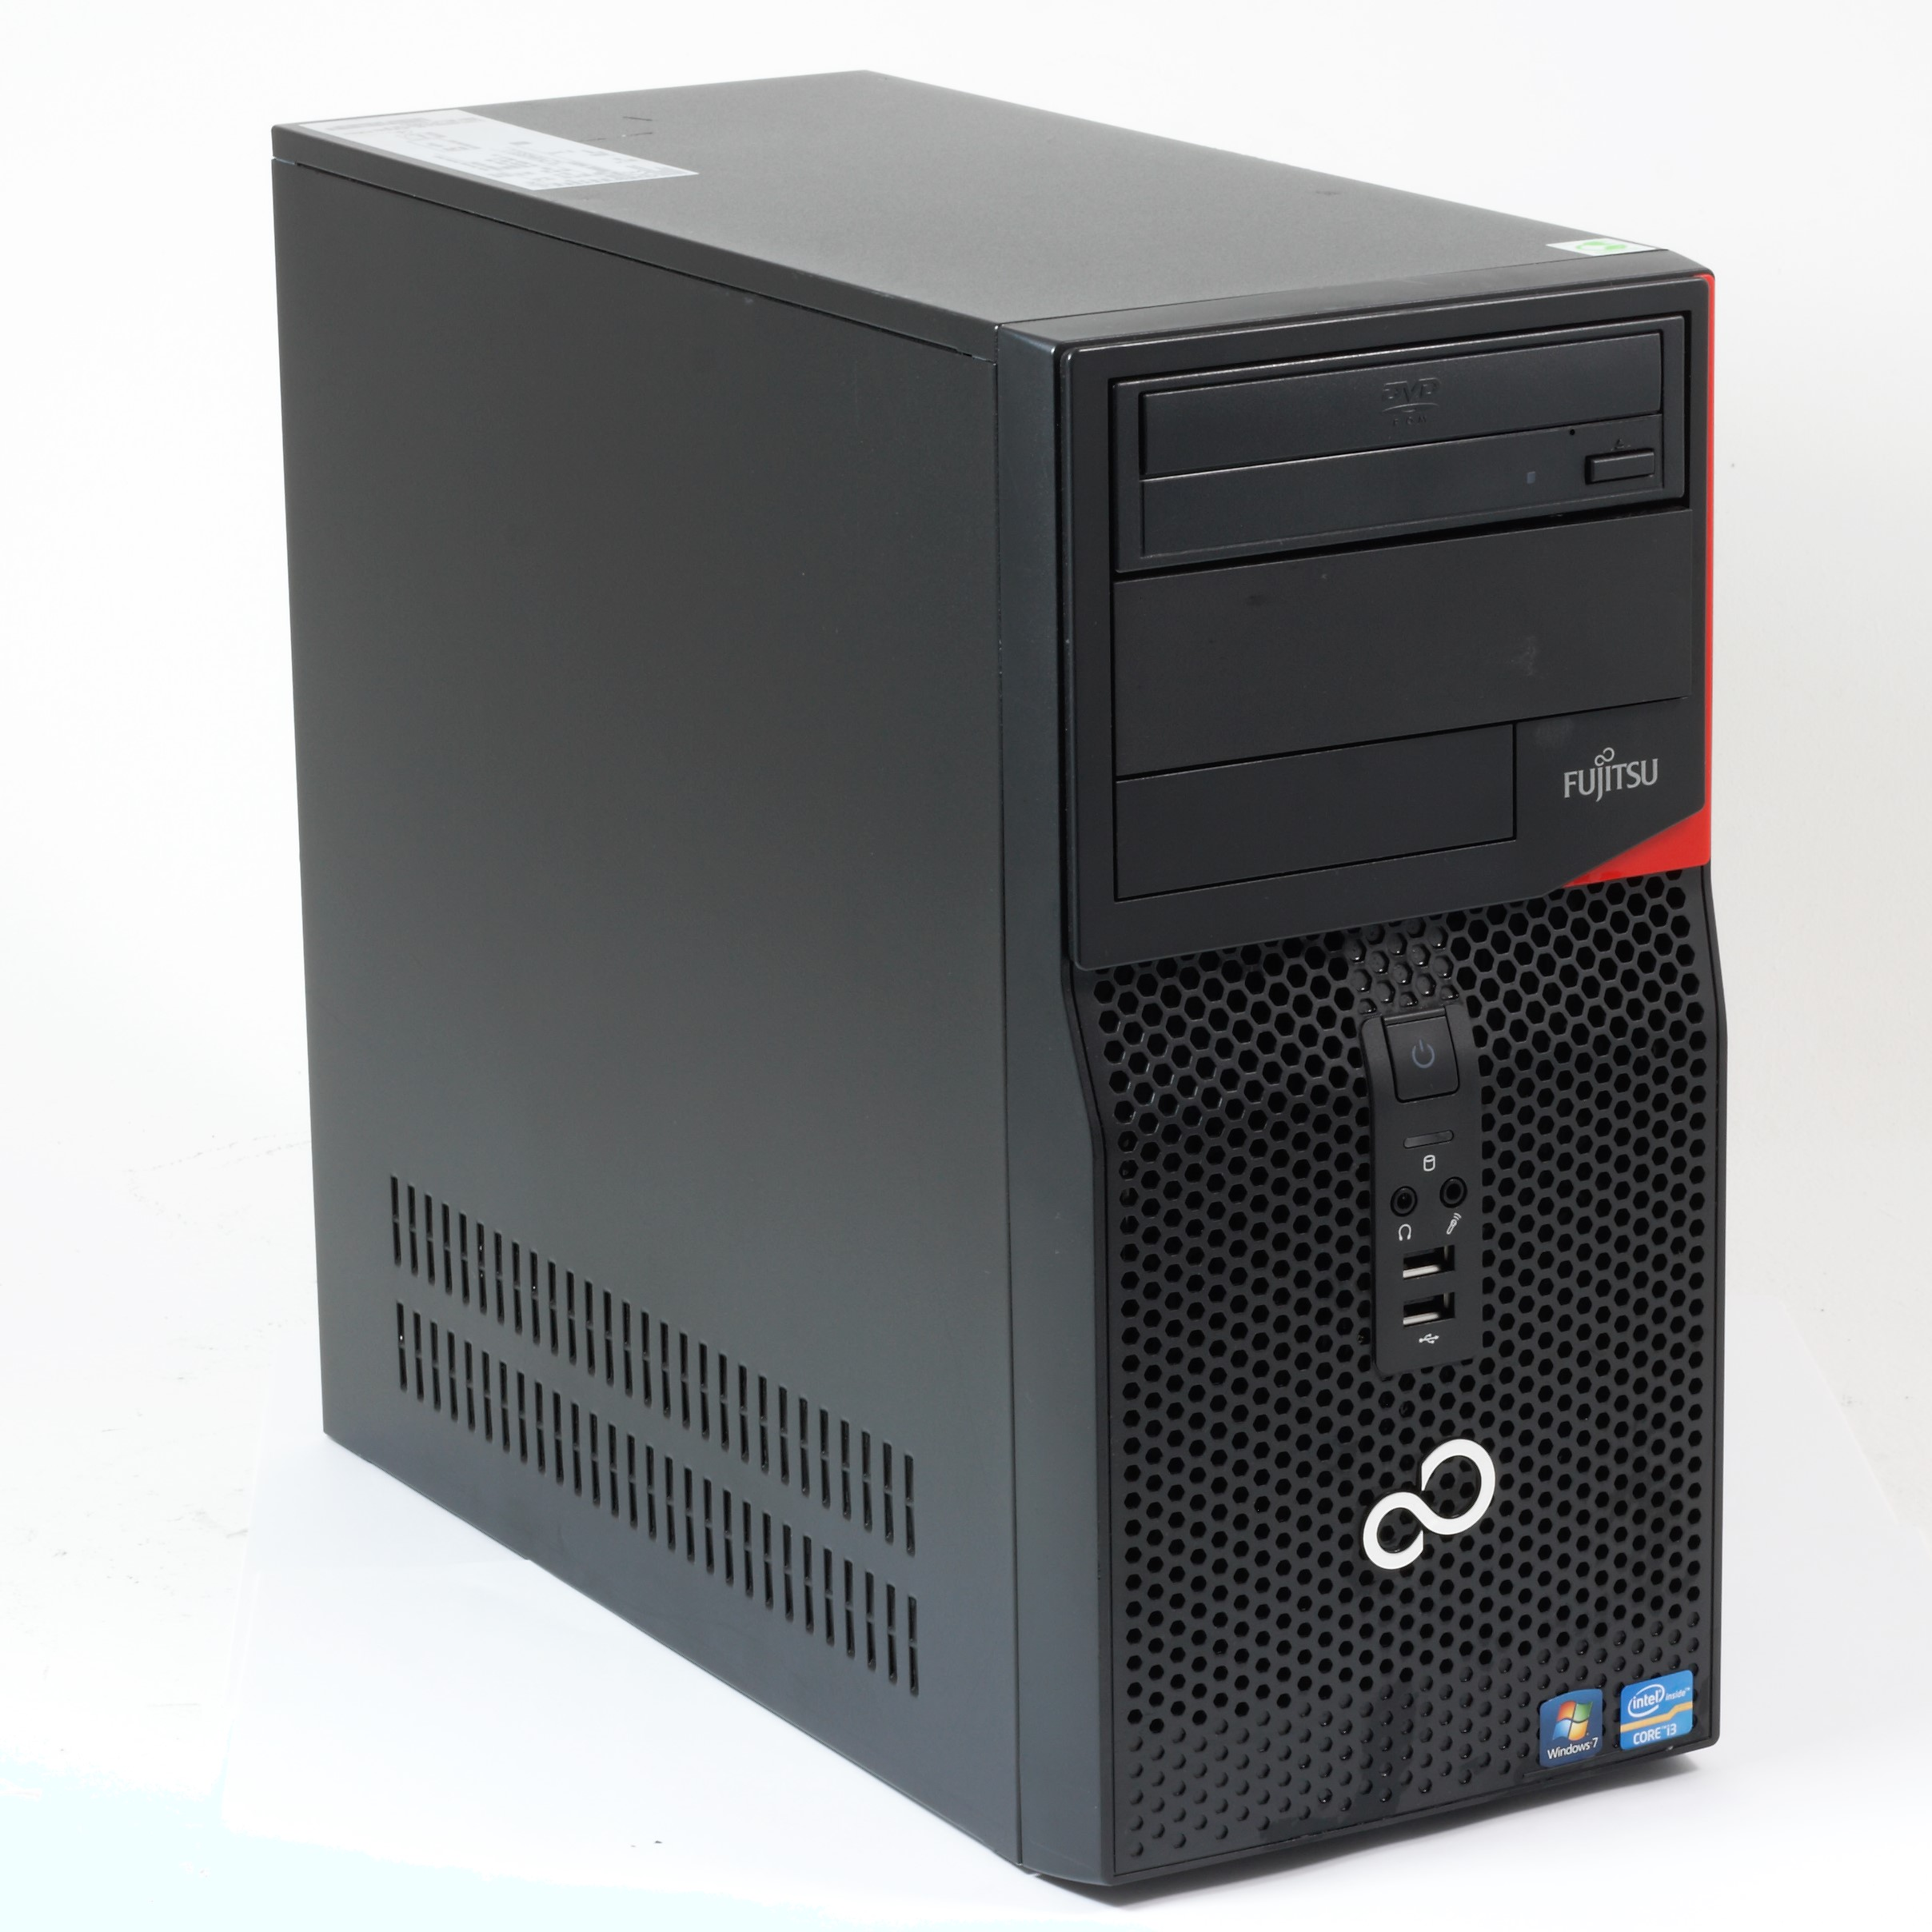 Fujitsu Esprimo P420 Minitower PC Core i3 4170 3,7GHz 500GB HDD 4GB RAM DVD-RW